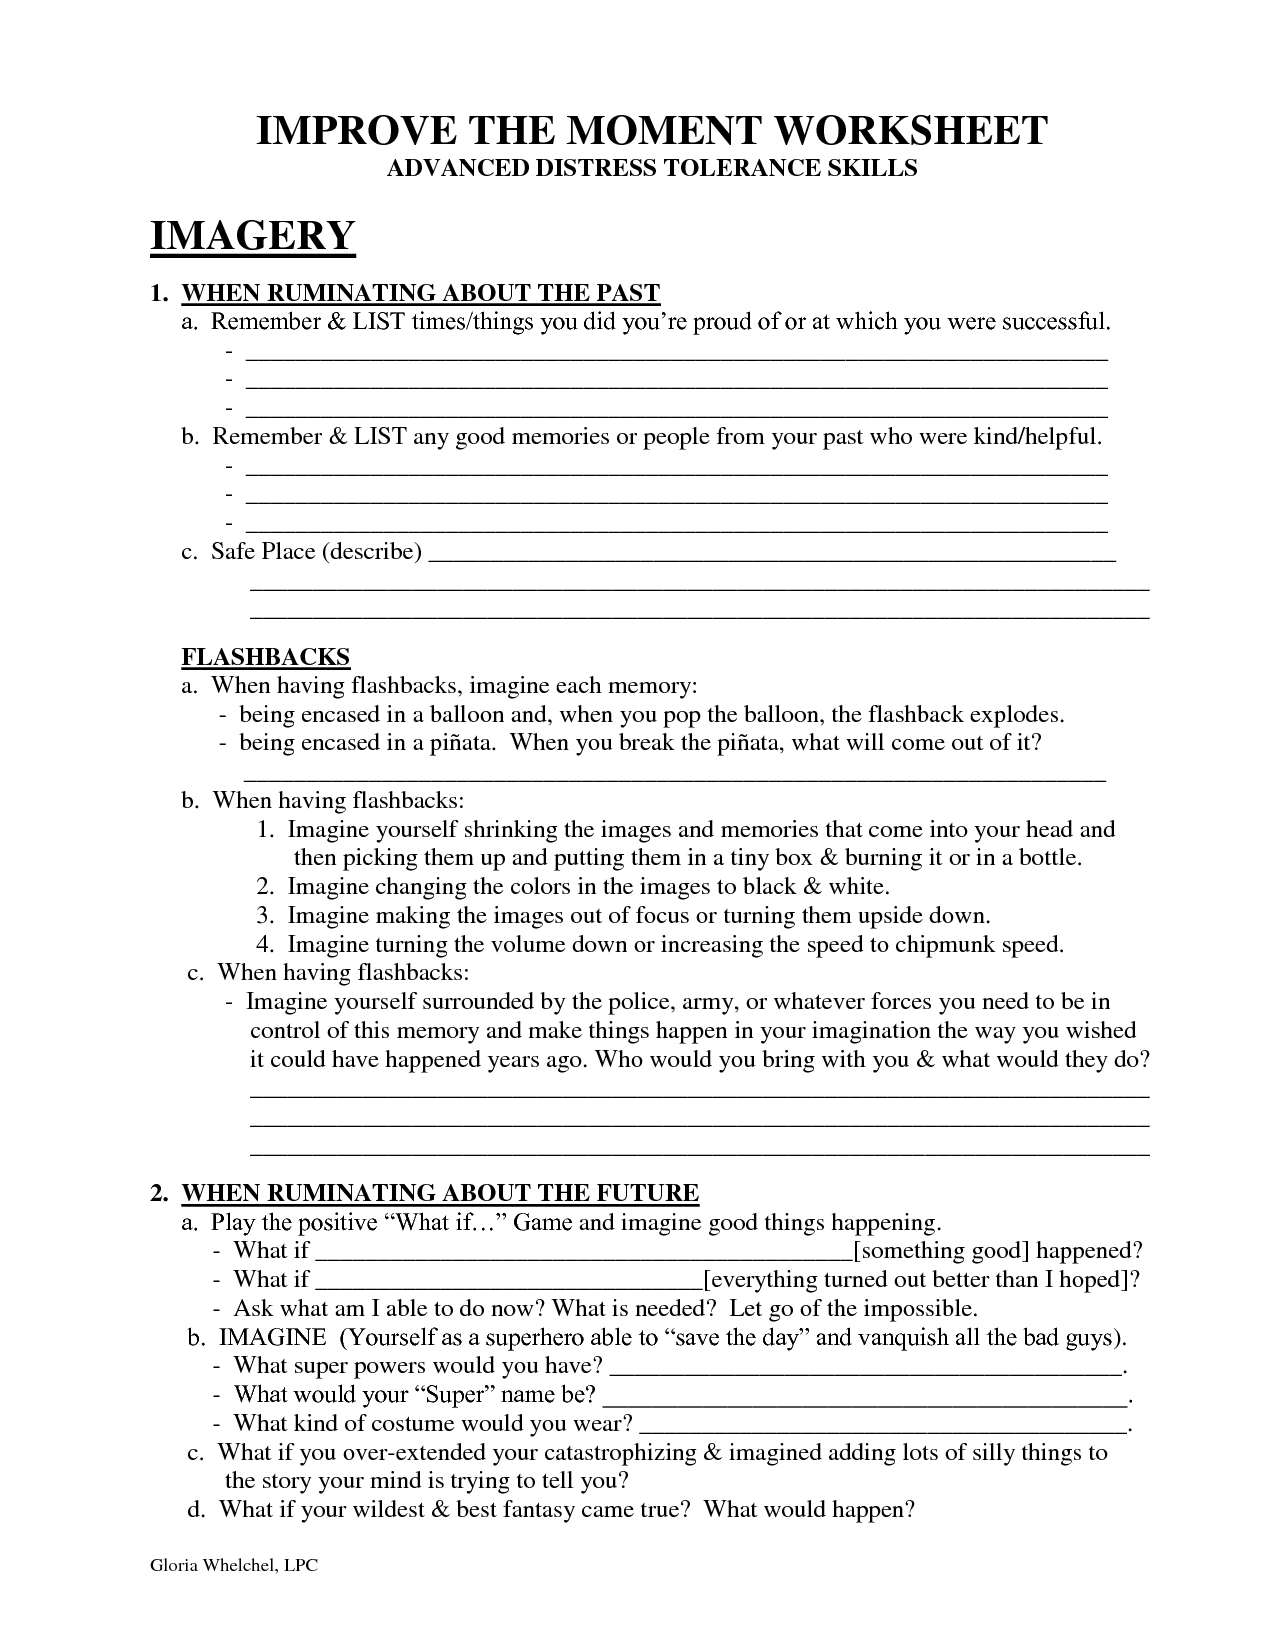 Improve The Moment Worksheet